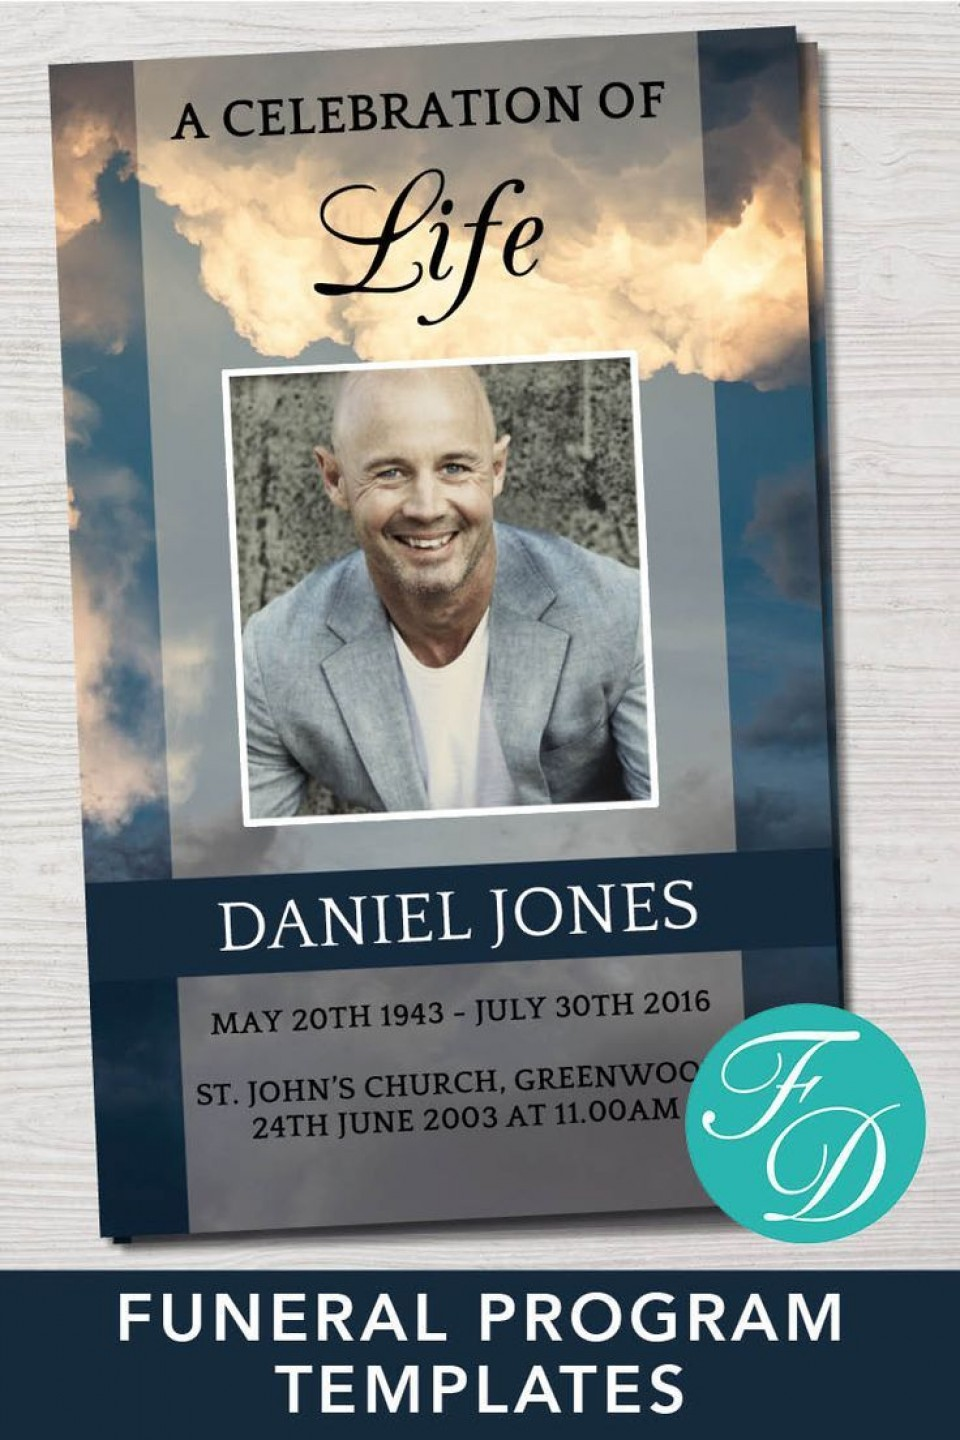 001 Simple Free Celebration Of Life Program Template Download Example 960